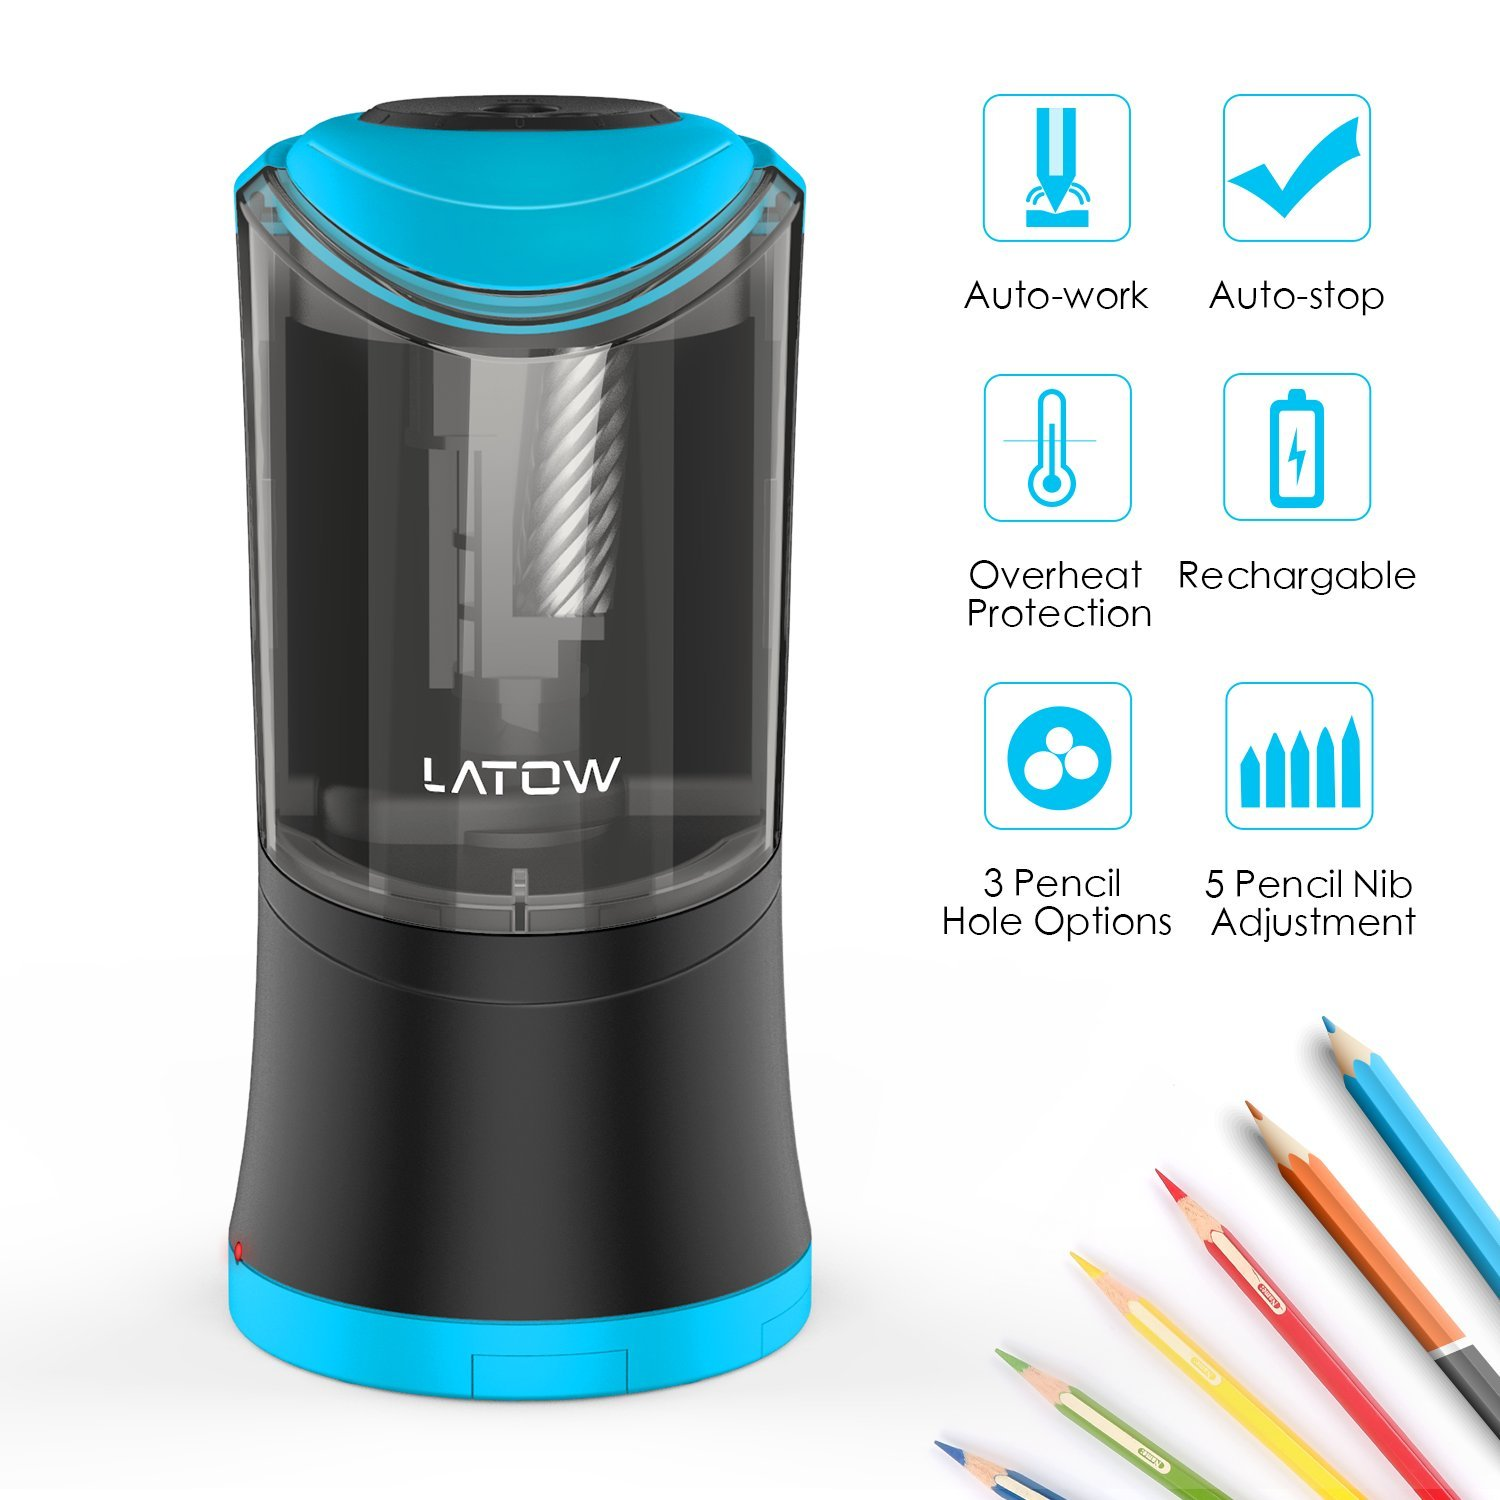 Electric Pencil Sharpener with Durable Helical Blade to Fast Sharpen, LATOW USB Rechargeable Auto Stop Sharpener for 6-12mm Diameter Pencils, Suitable for School Office Home (Battery Included)